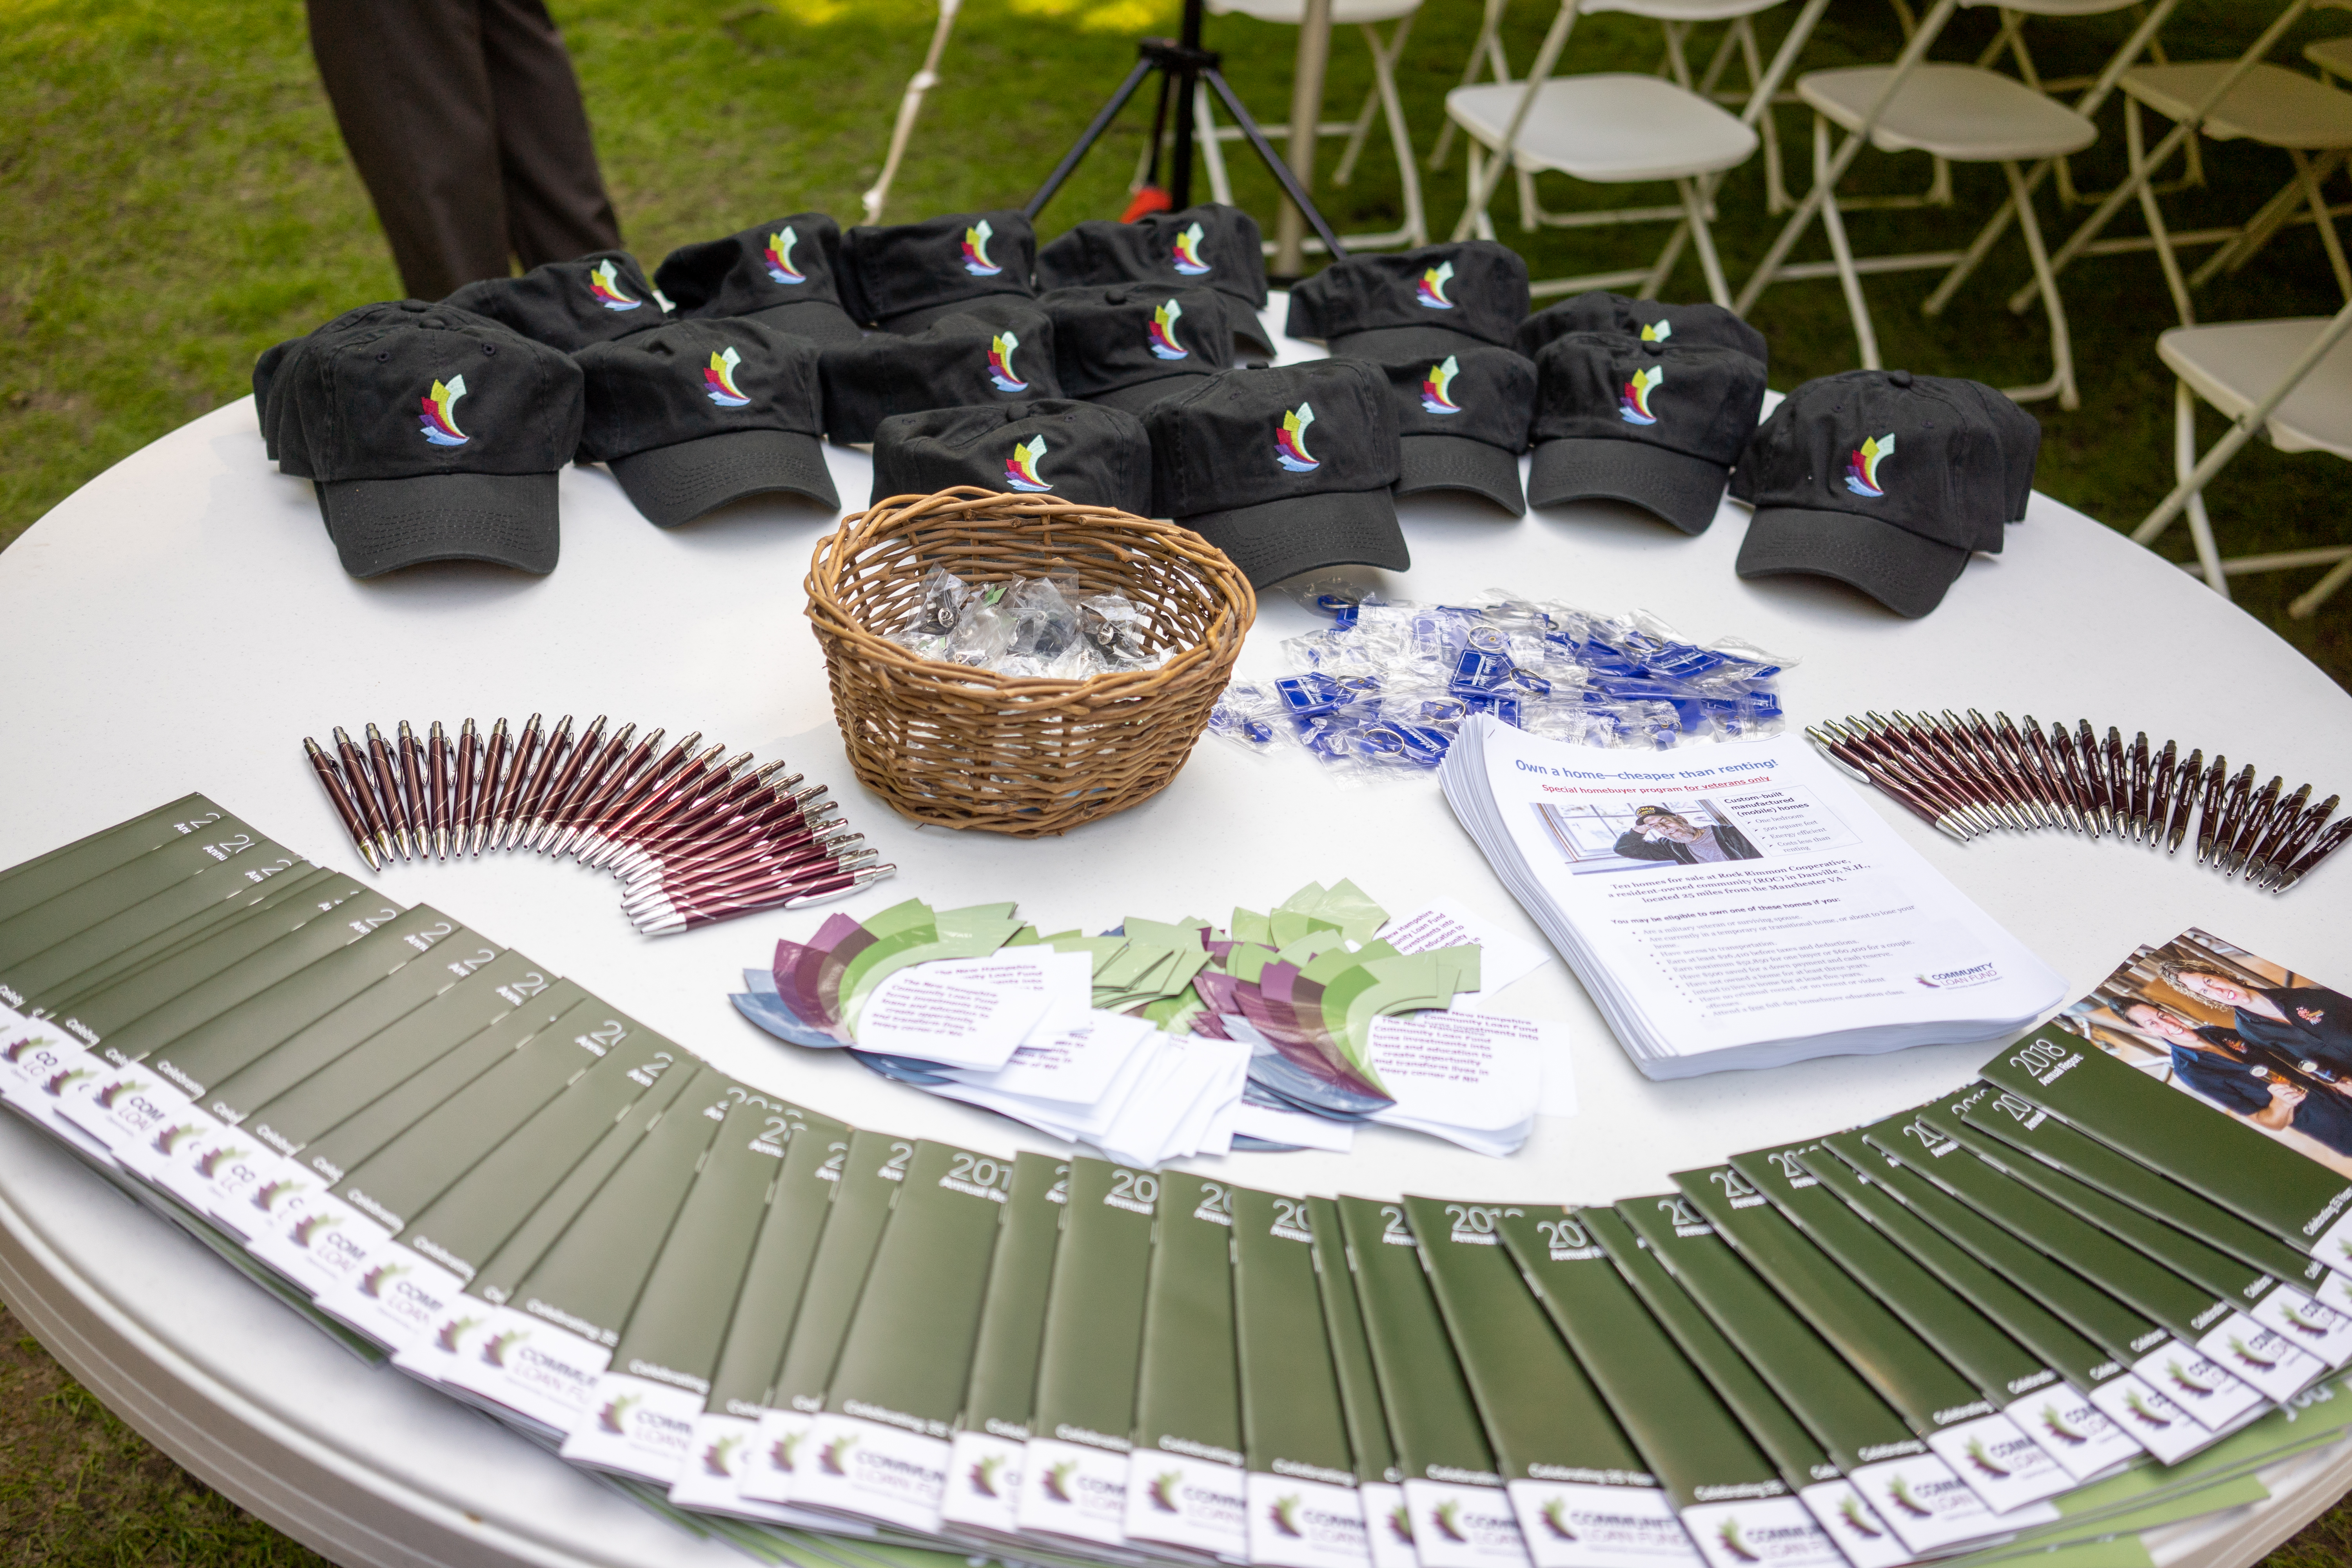 Giveaway items--hats, magnets, and annual reports--spread out on table